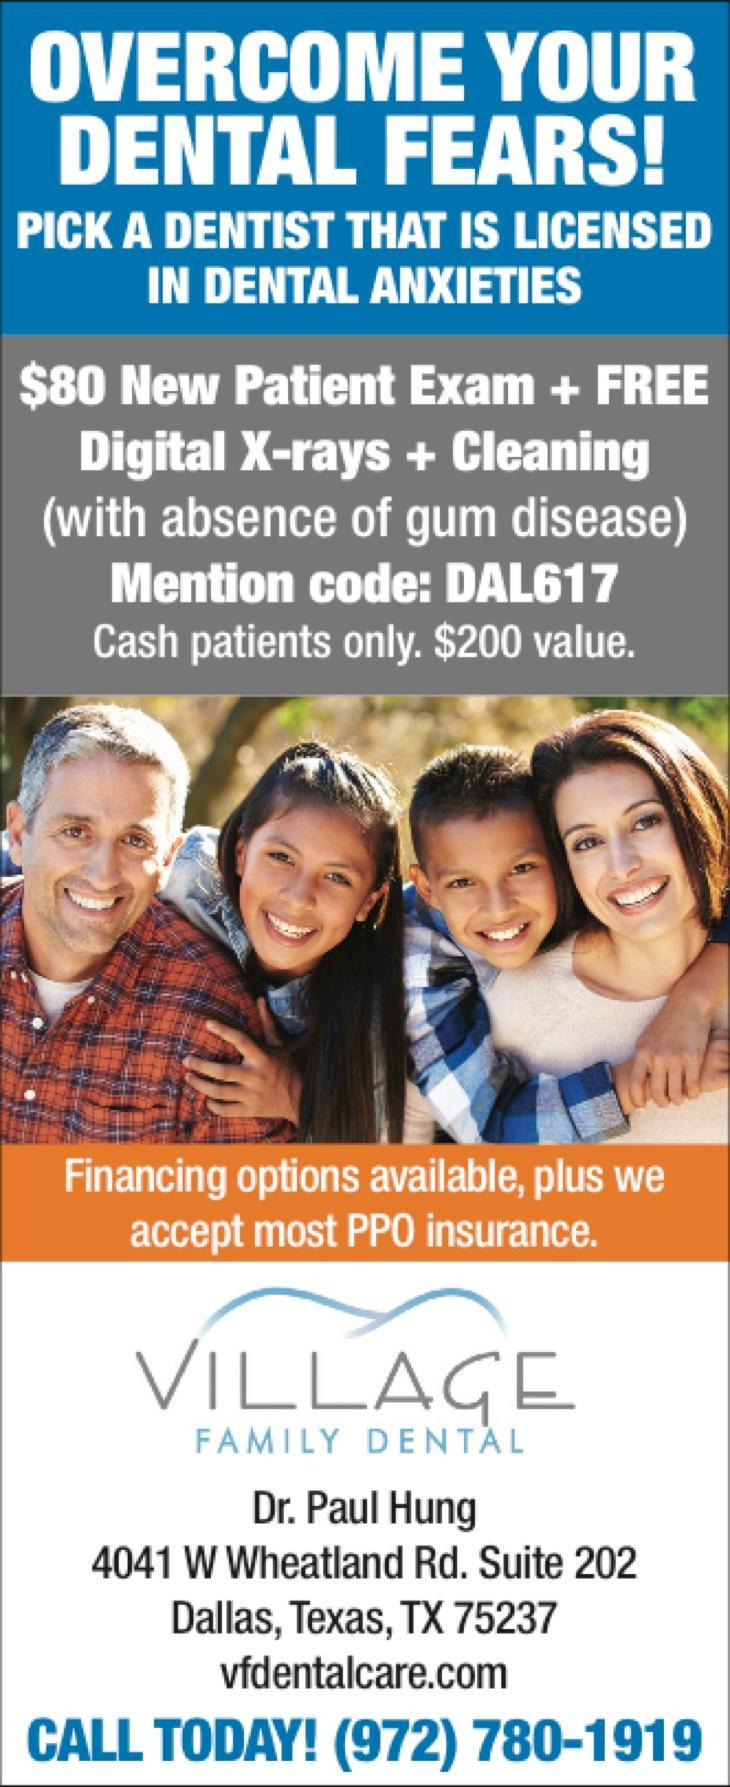 Village Family Dental - Dentist in Dallas, Duncanville